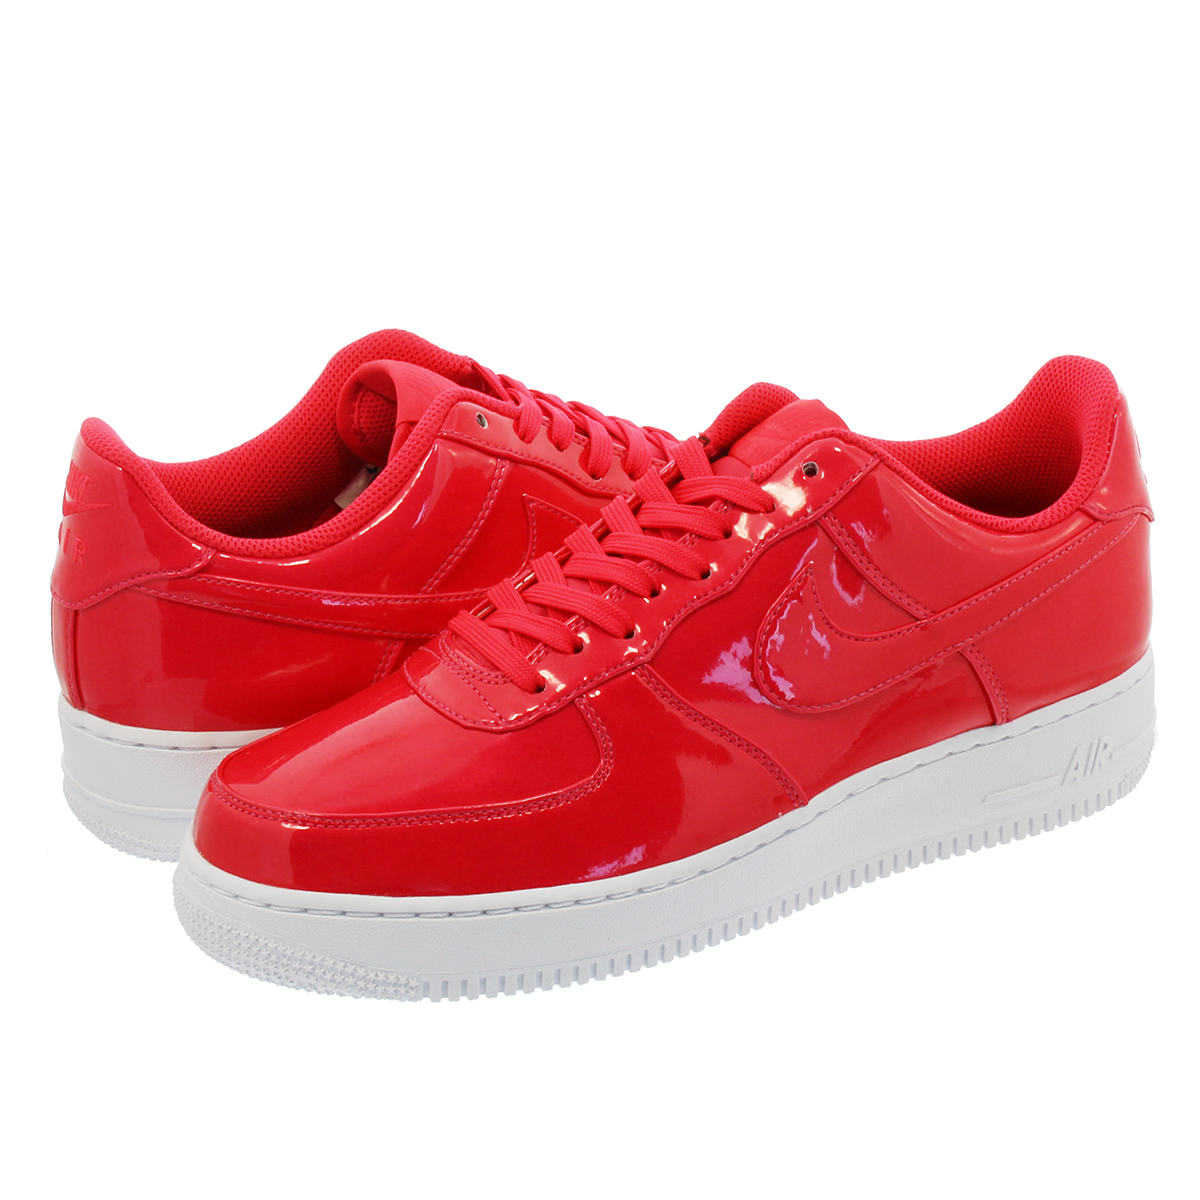 online store 1c593 ccbbb NIKE AIR FORCE 1  07 LV8 UV Nike air force 1  07 LV8 UV SIREN RED WHITE